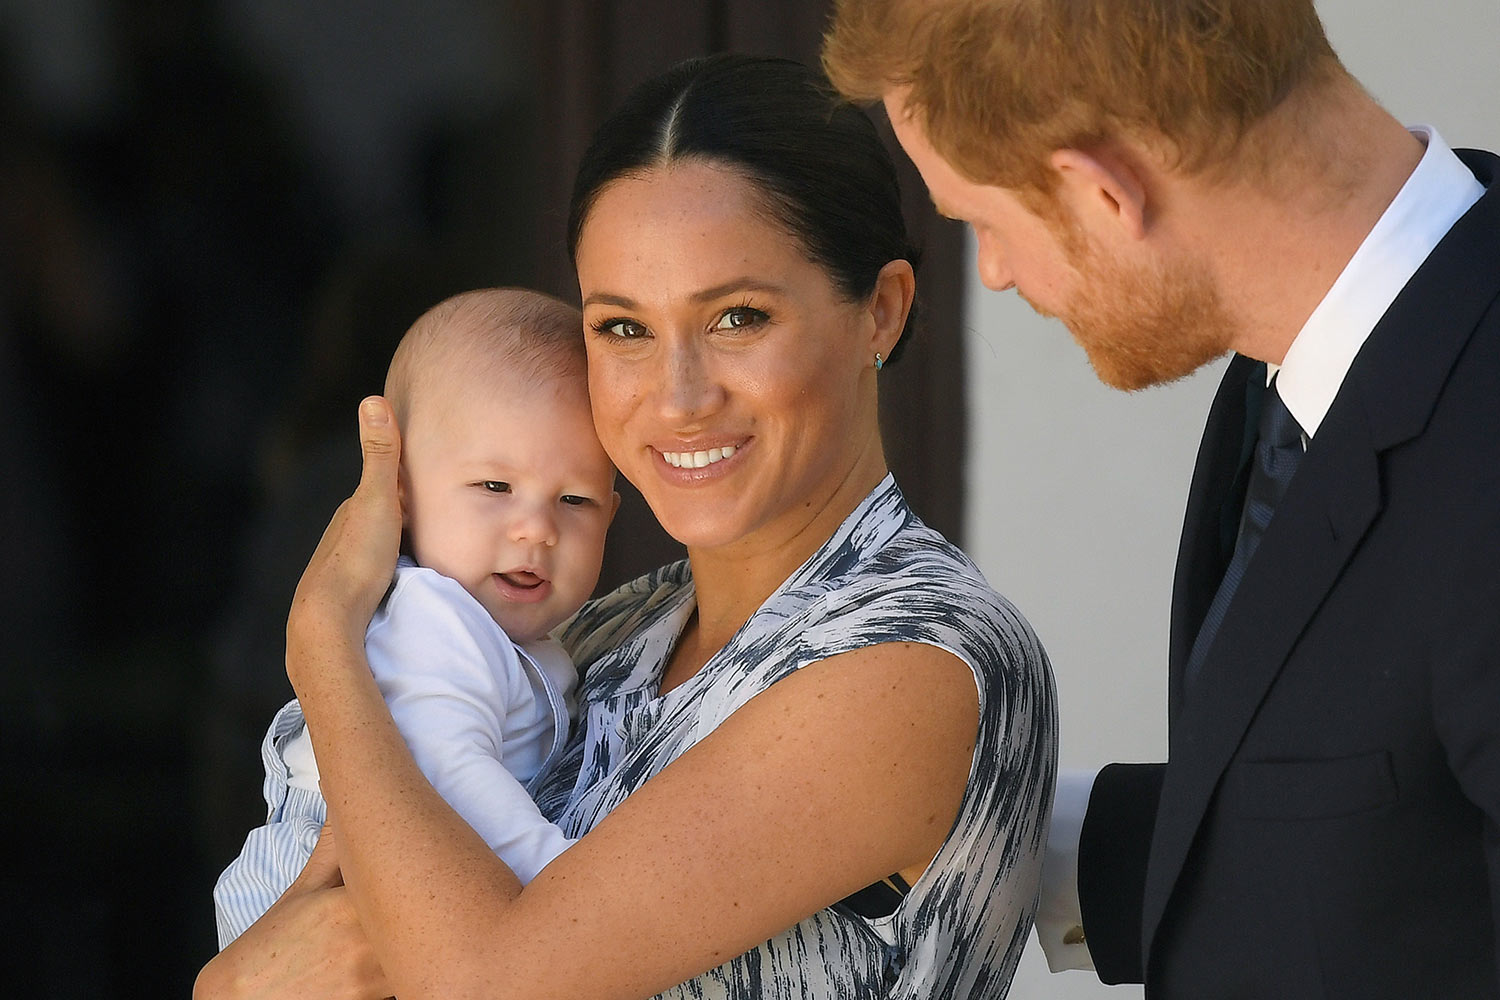 Explained: Why isn't Prince Harry and Meghan Markle's son Archie a prince?